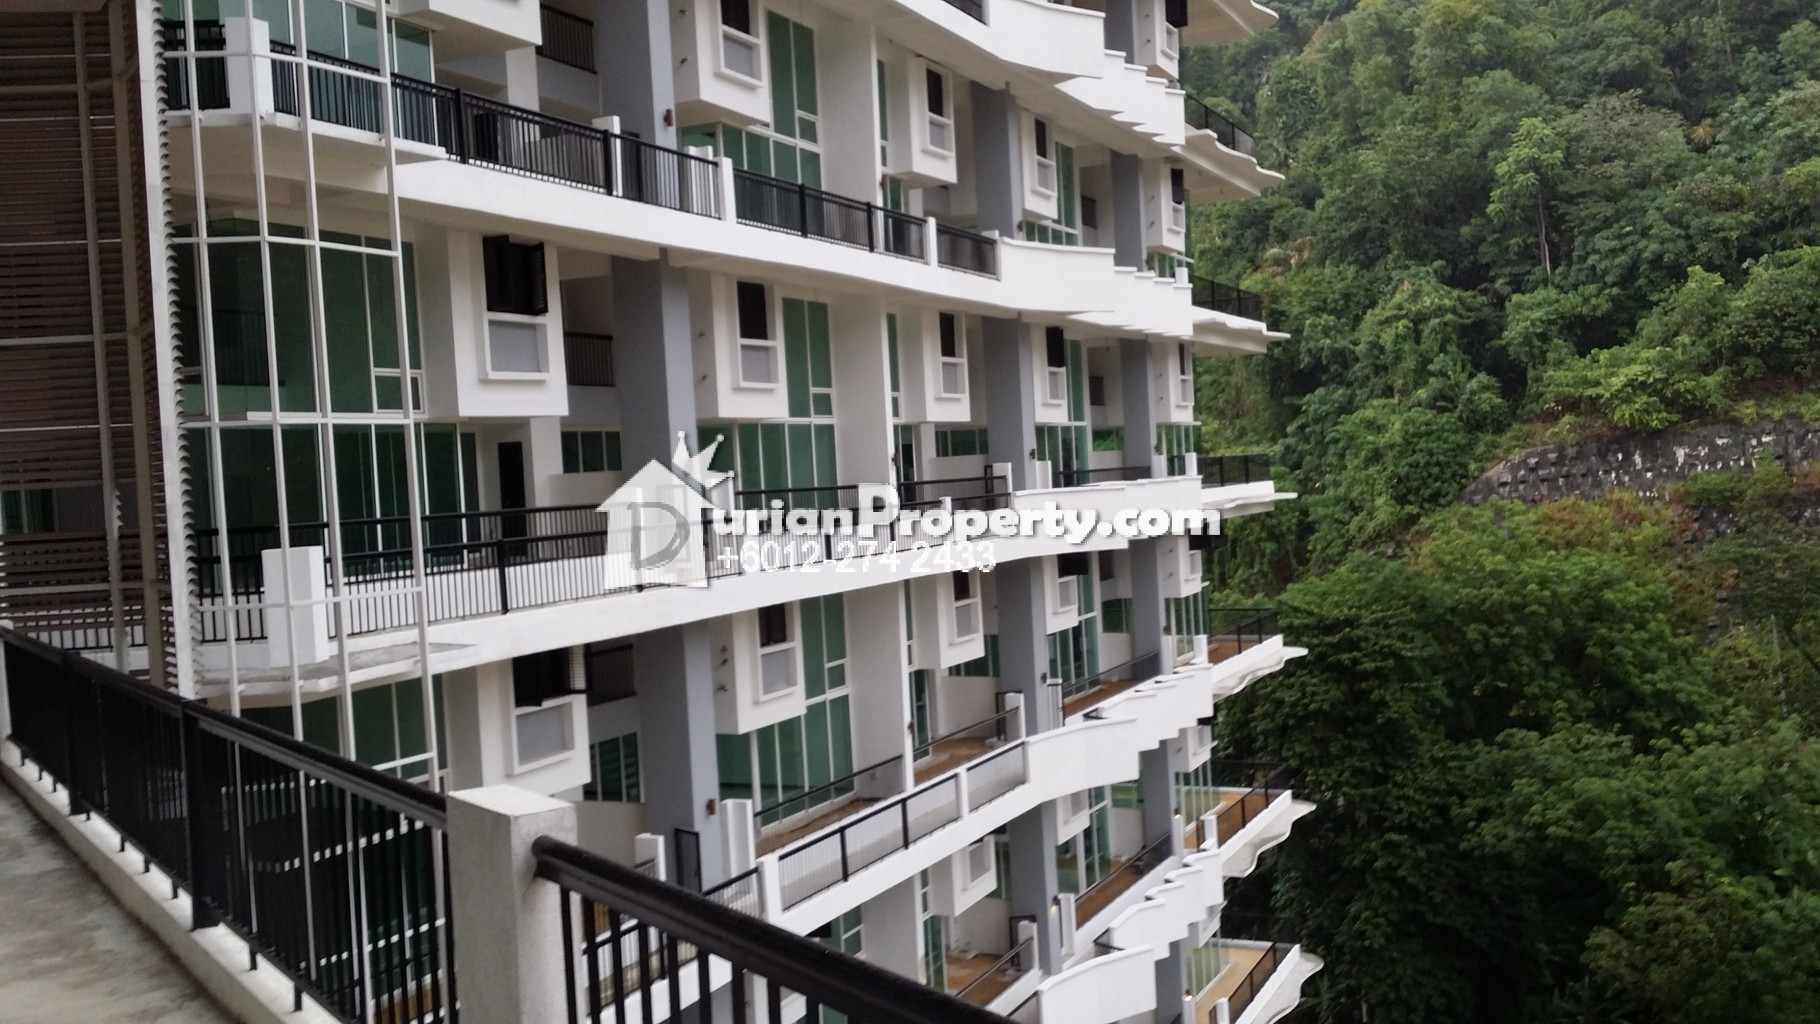 Condo duplex for sale at armanee terrace ii damansara for Armanee terrace 1